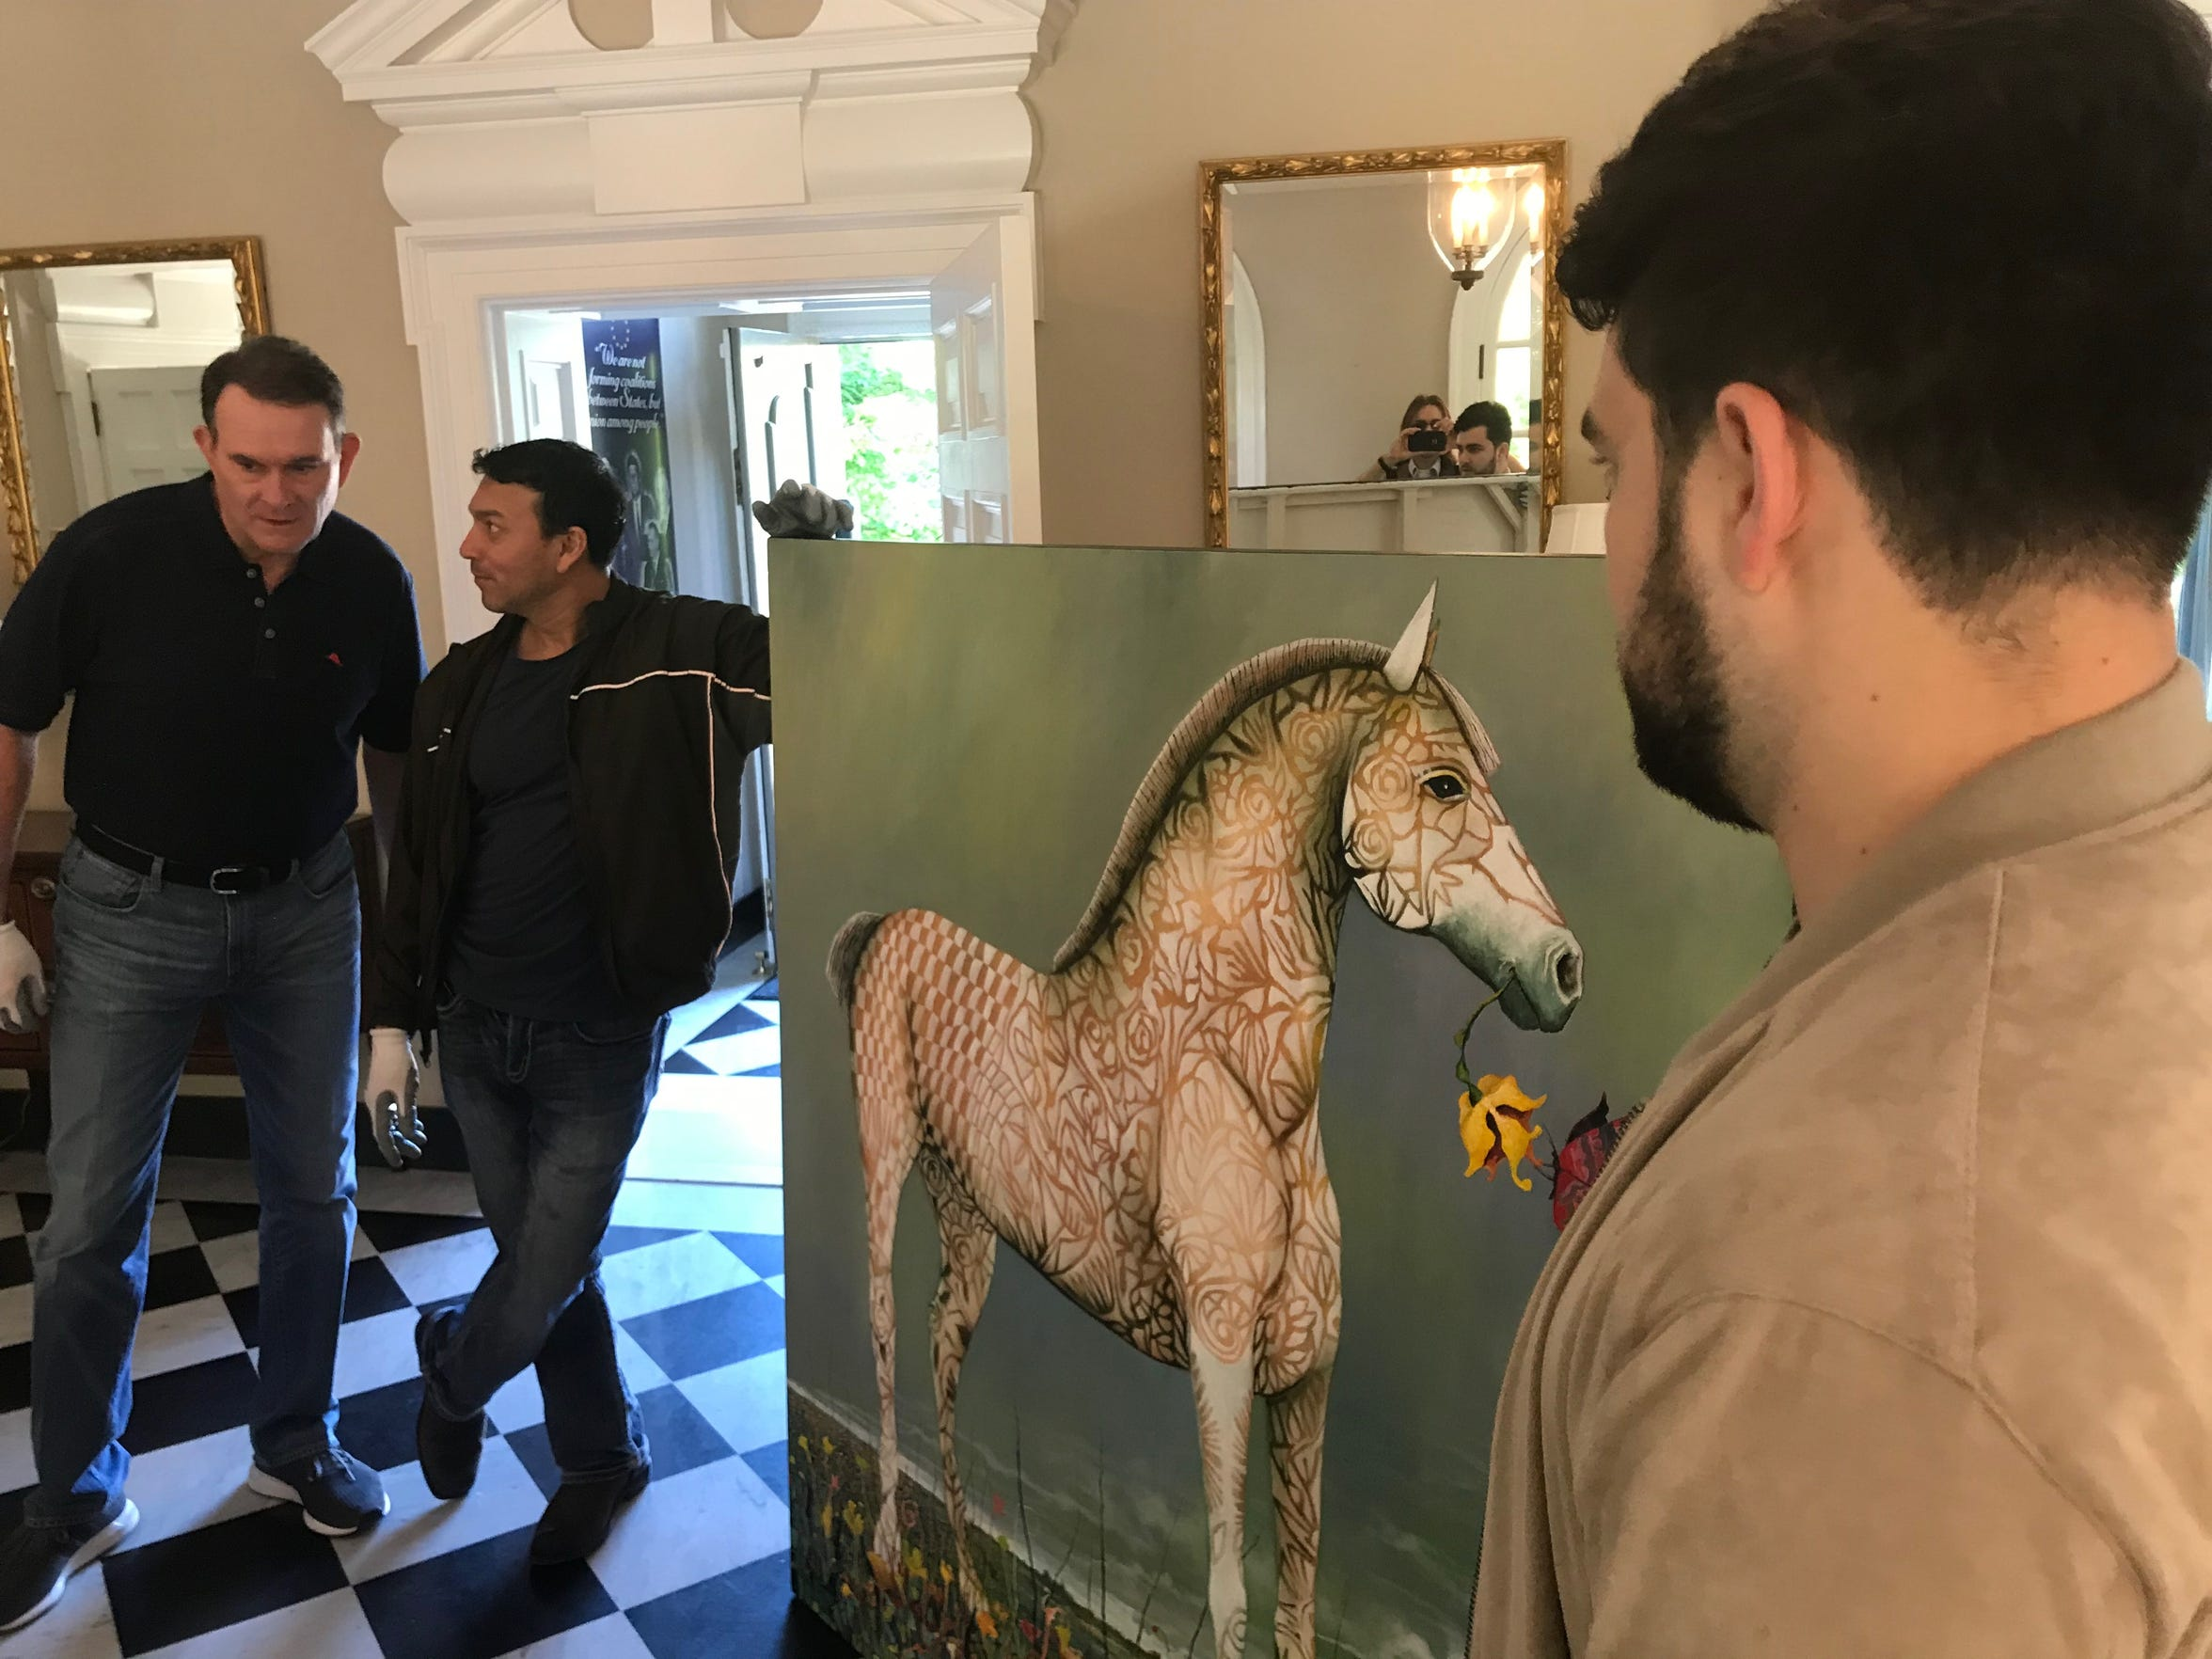 Left to Right: SAMFA board member Jeff Curry, San Angelo artist René Alvarado, and volunteer Taylor Velarde pause while carrying a painting into the European Union residence on May 15, 2019. The art is on loan from the San Angelo Museum of Fine arts until May 2020.